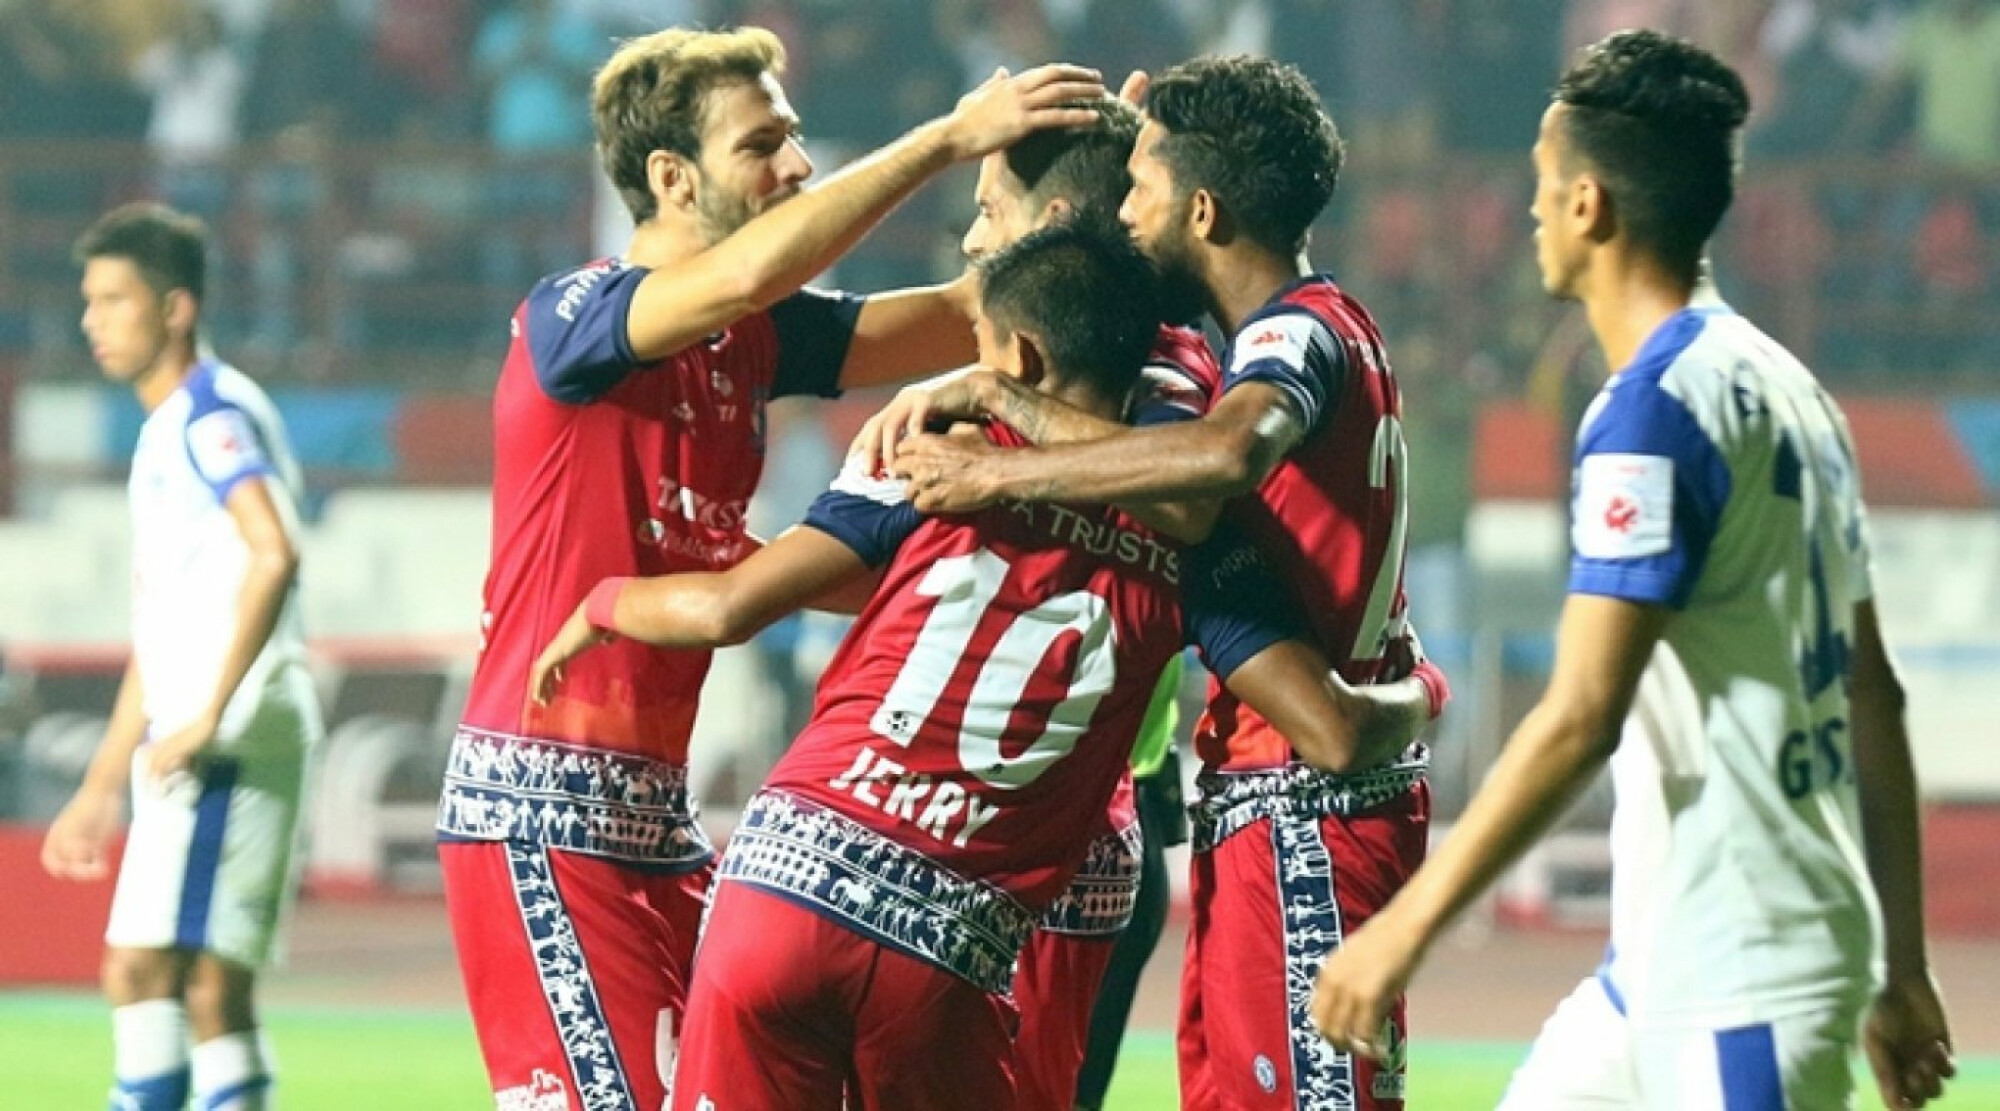 ISL 2018-19: Jamshedpur thrash Bengaluru to end the season on high note.